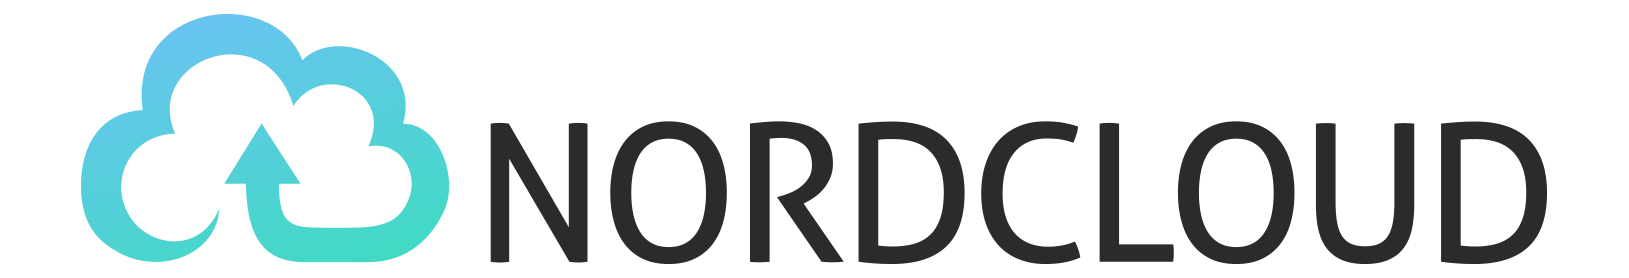 nordcloud_logo_large